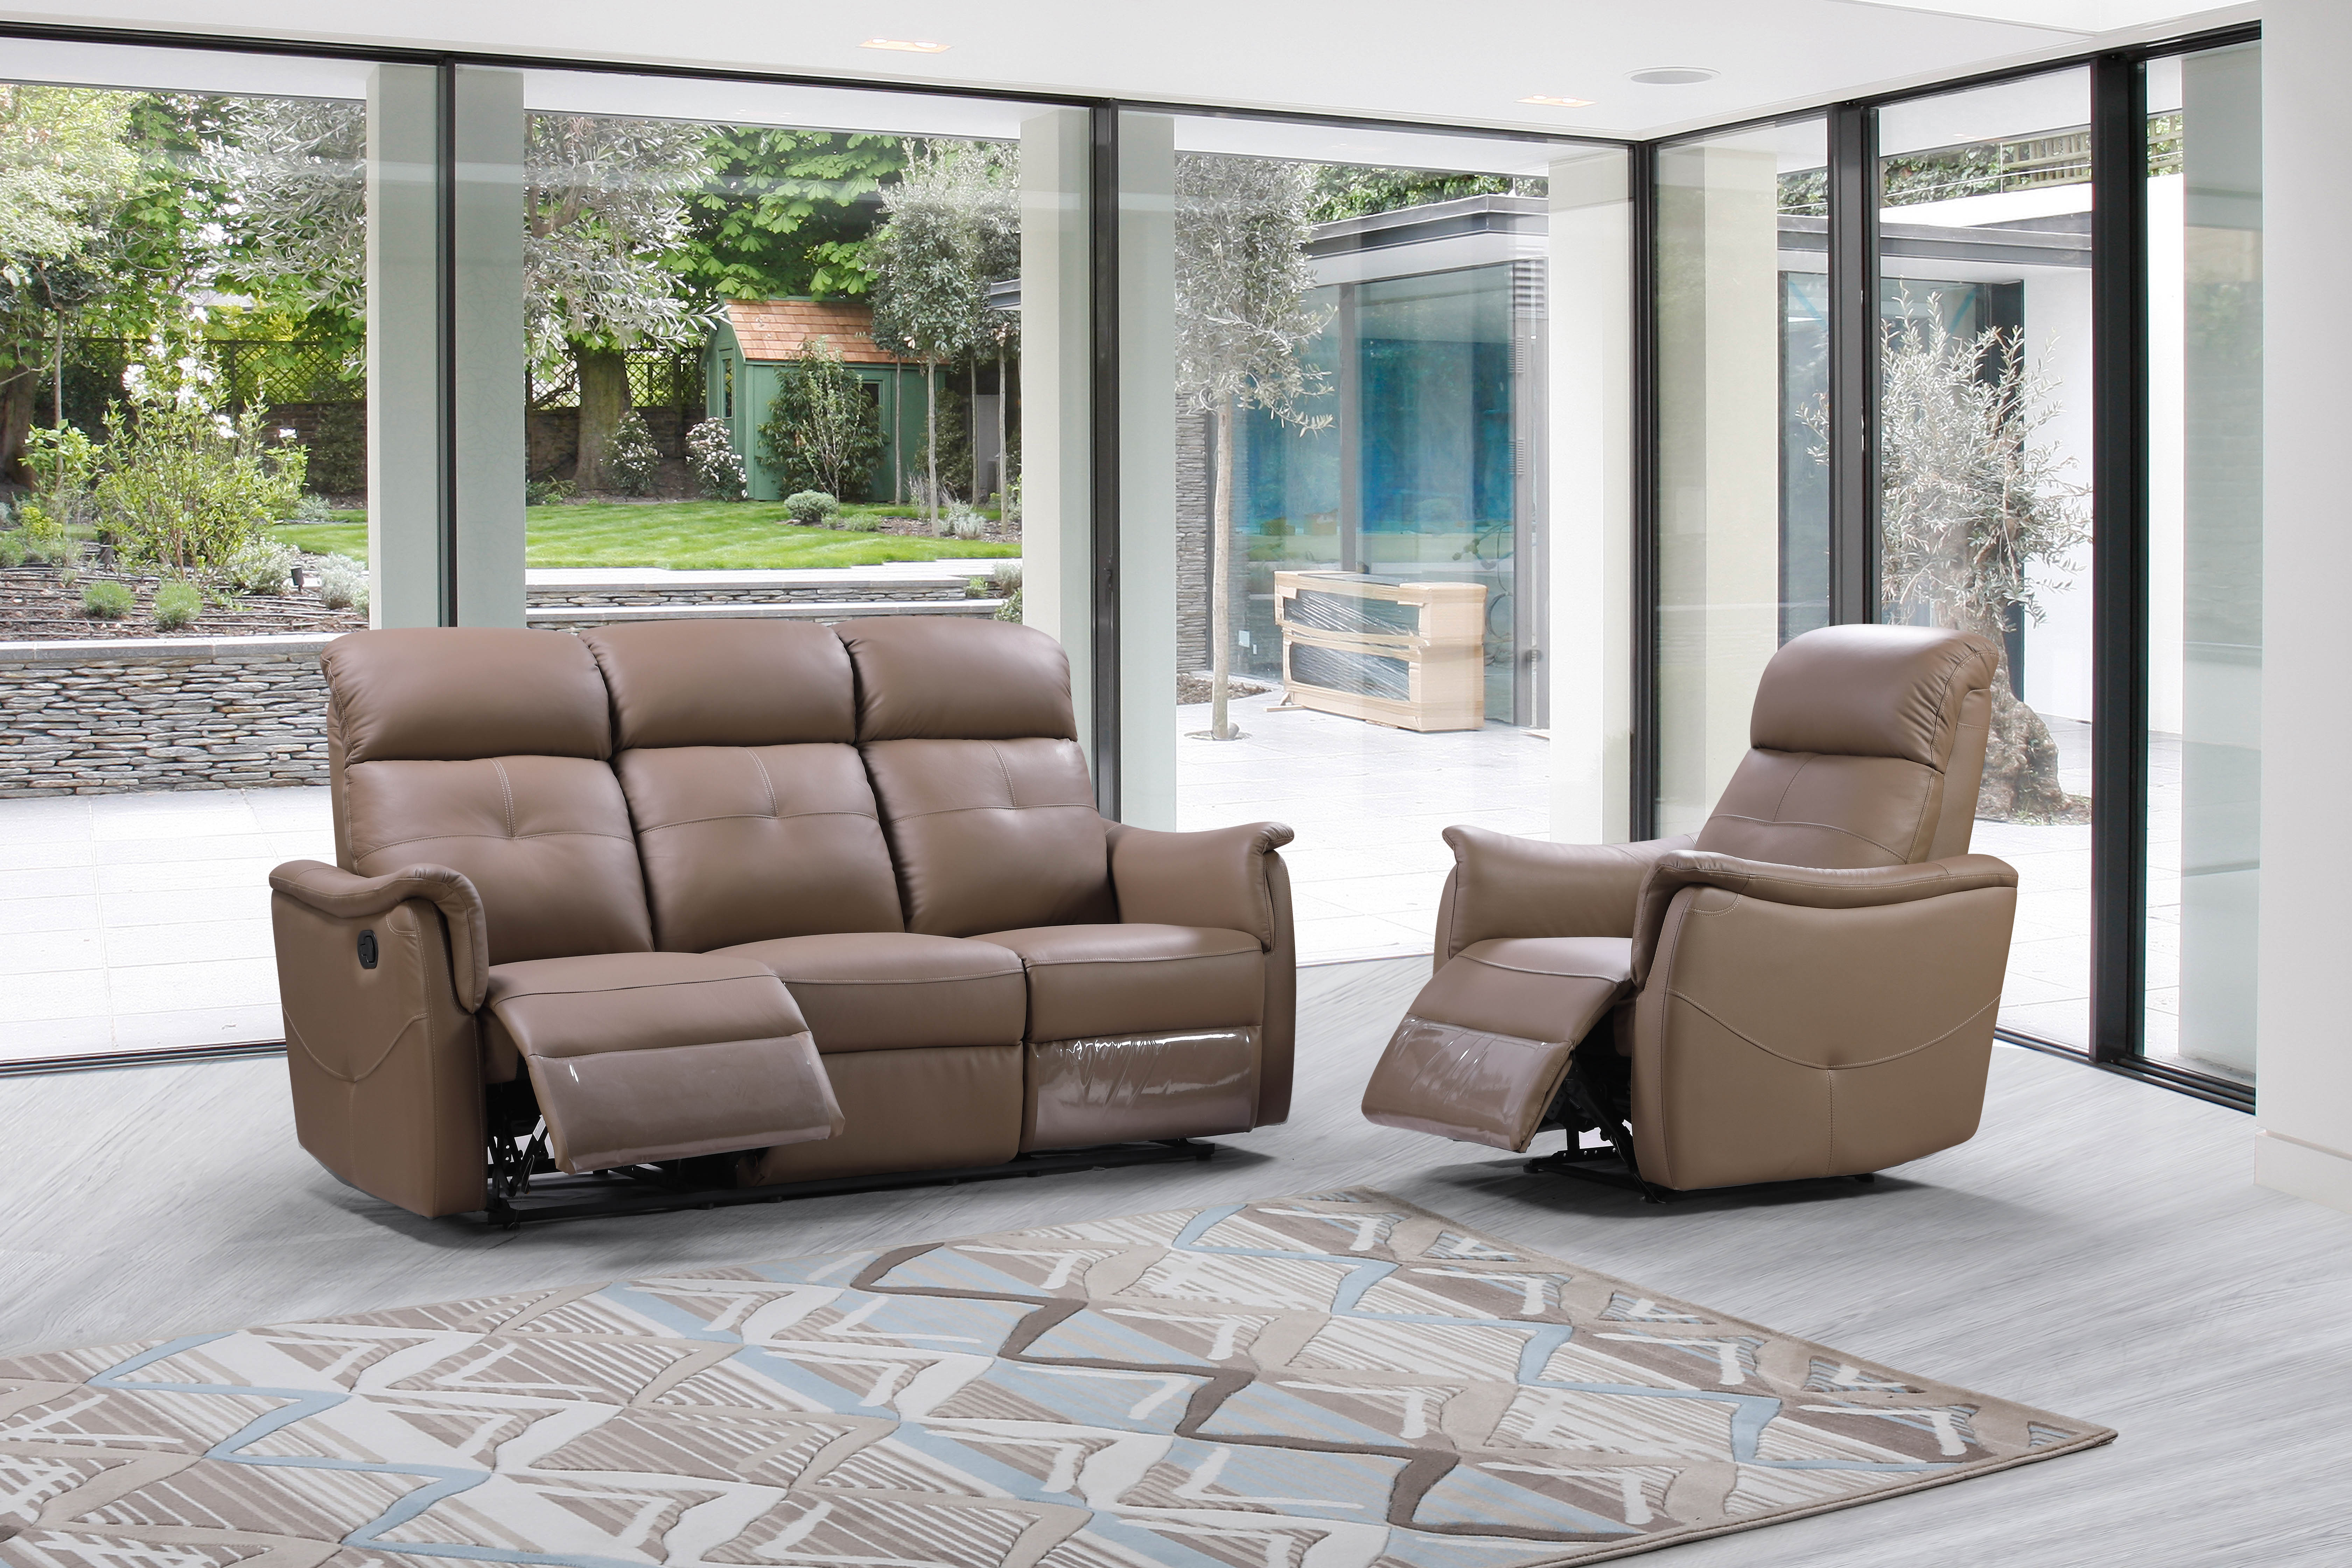 Italy Leather Recliner Sofa